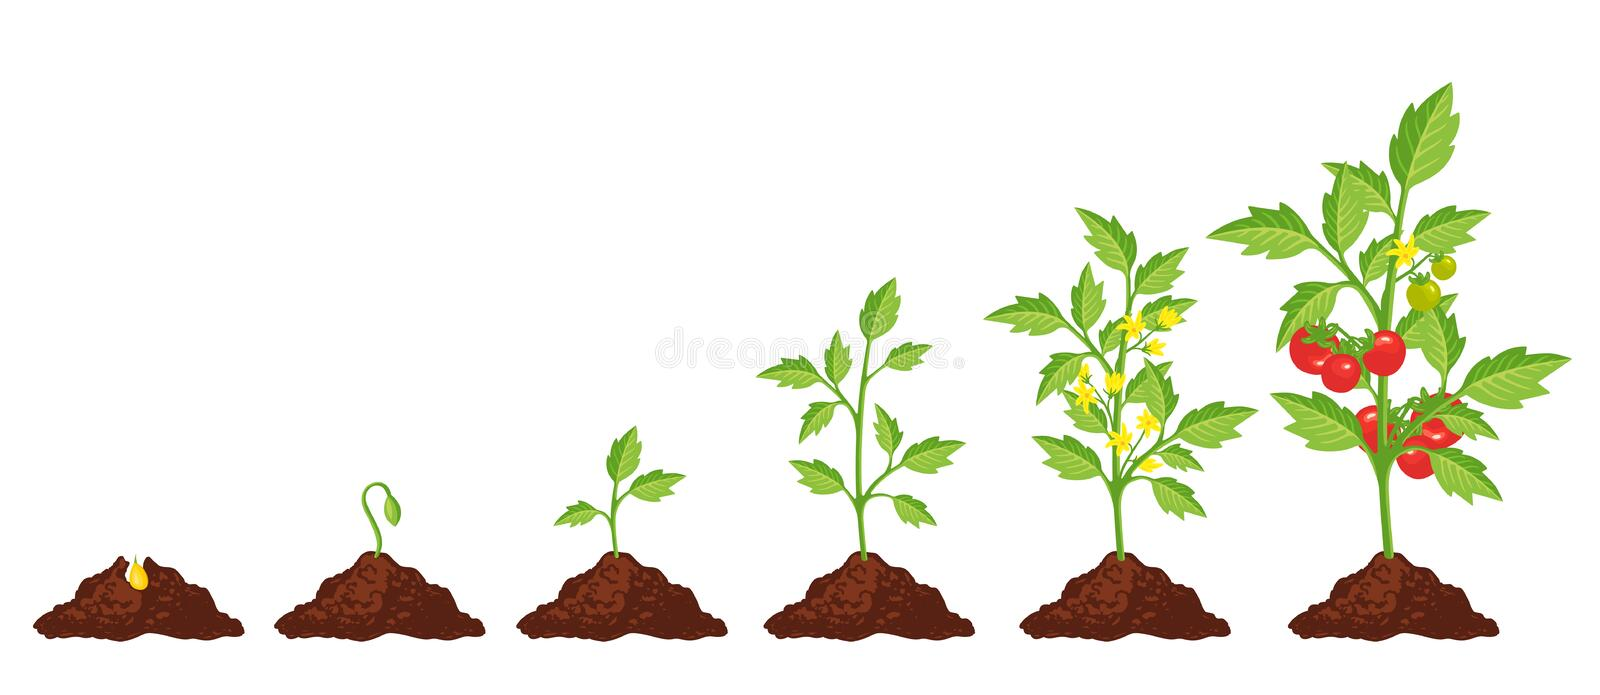 Tomato stage growth vector illustration